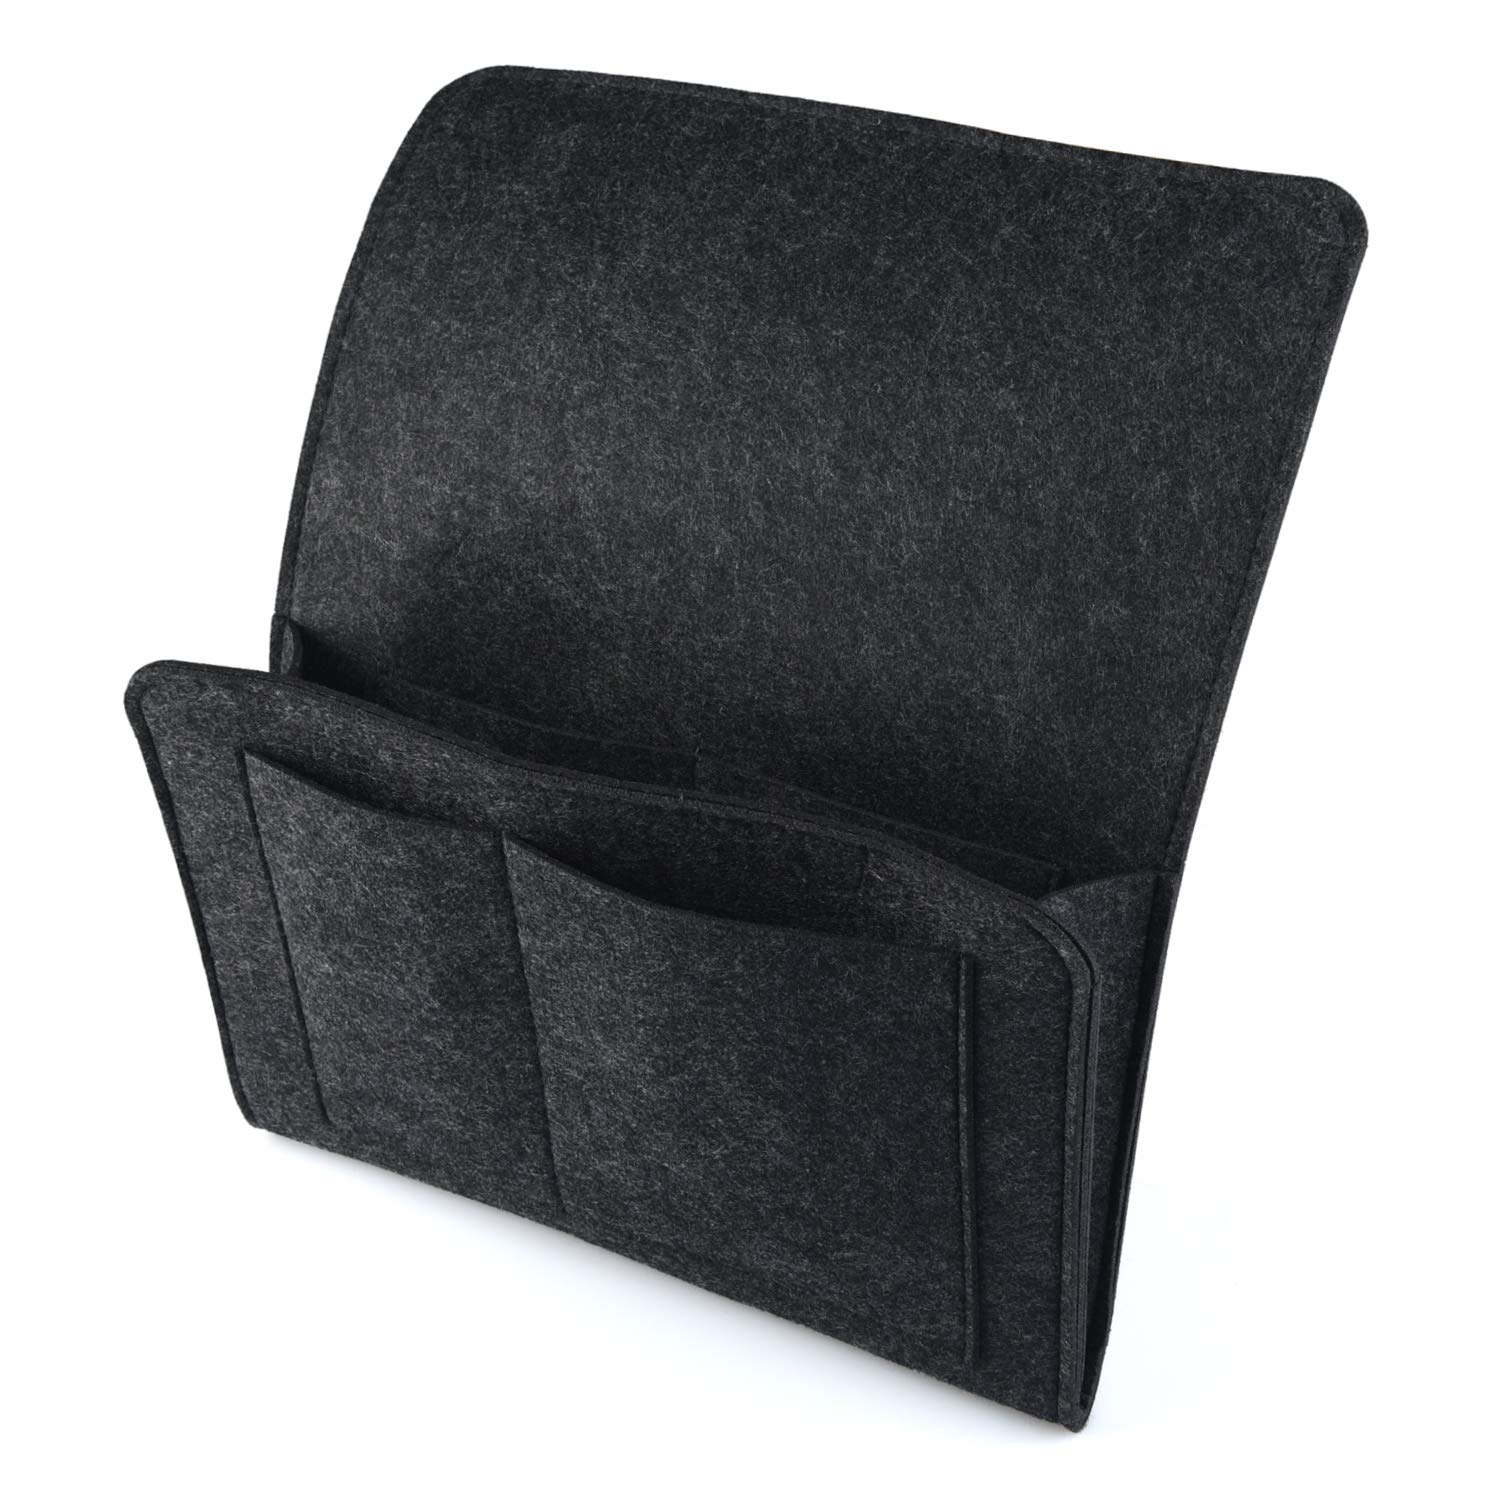 Thick Felt Bedside Caddy Pocket Sofa Bed Tidy Pocket Organiser for Phone, Remote, Magzine, Glasses, Book, Pad with Cable Holes & 4 Pockets HOGAR AMO JL401-01@#A